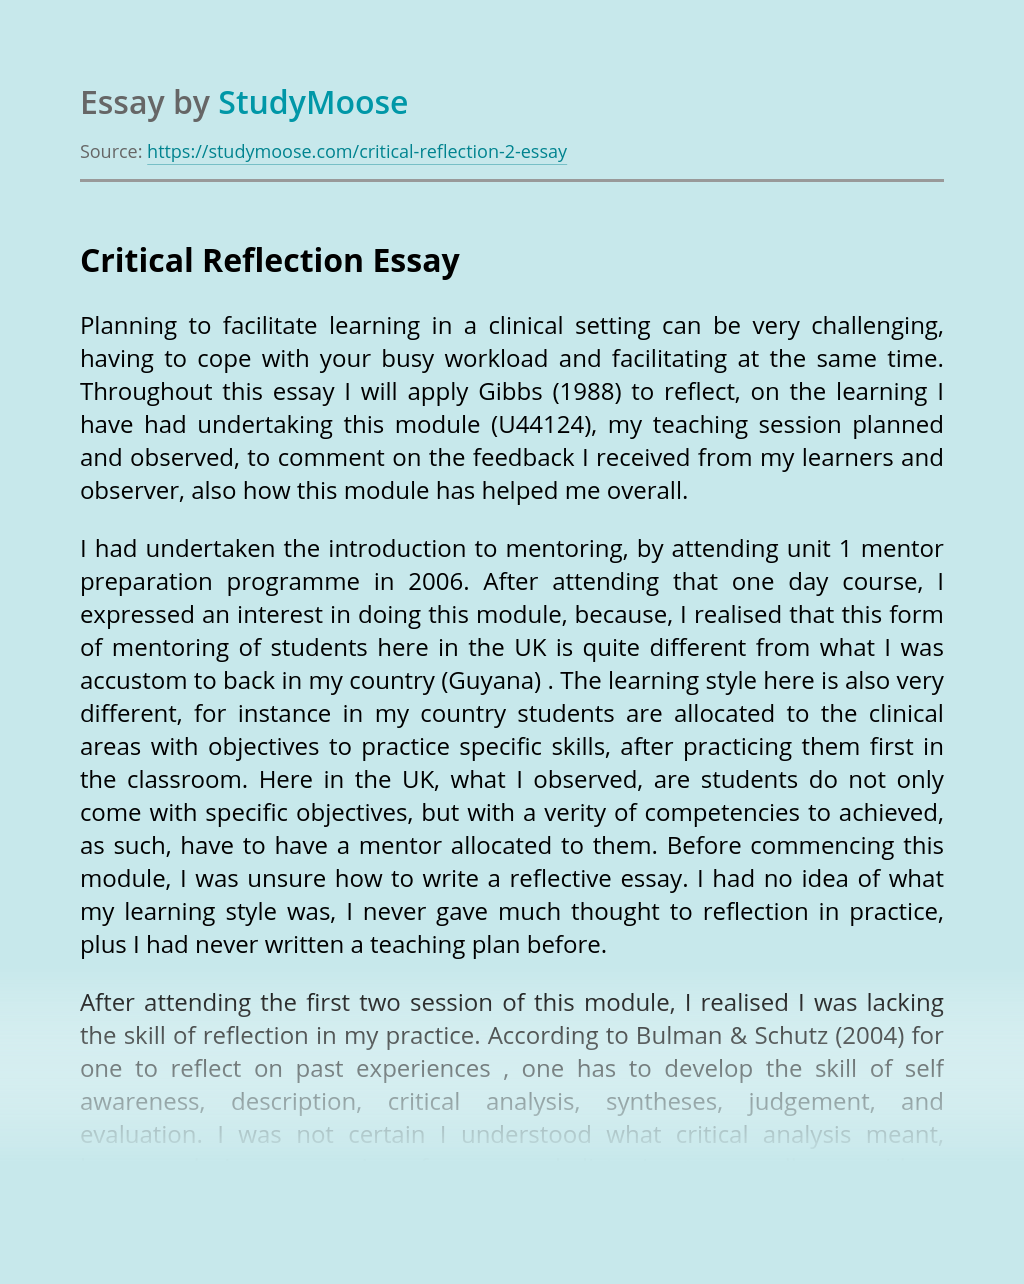 Critical Reflection